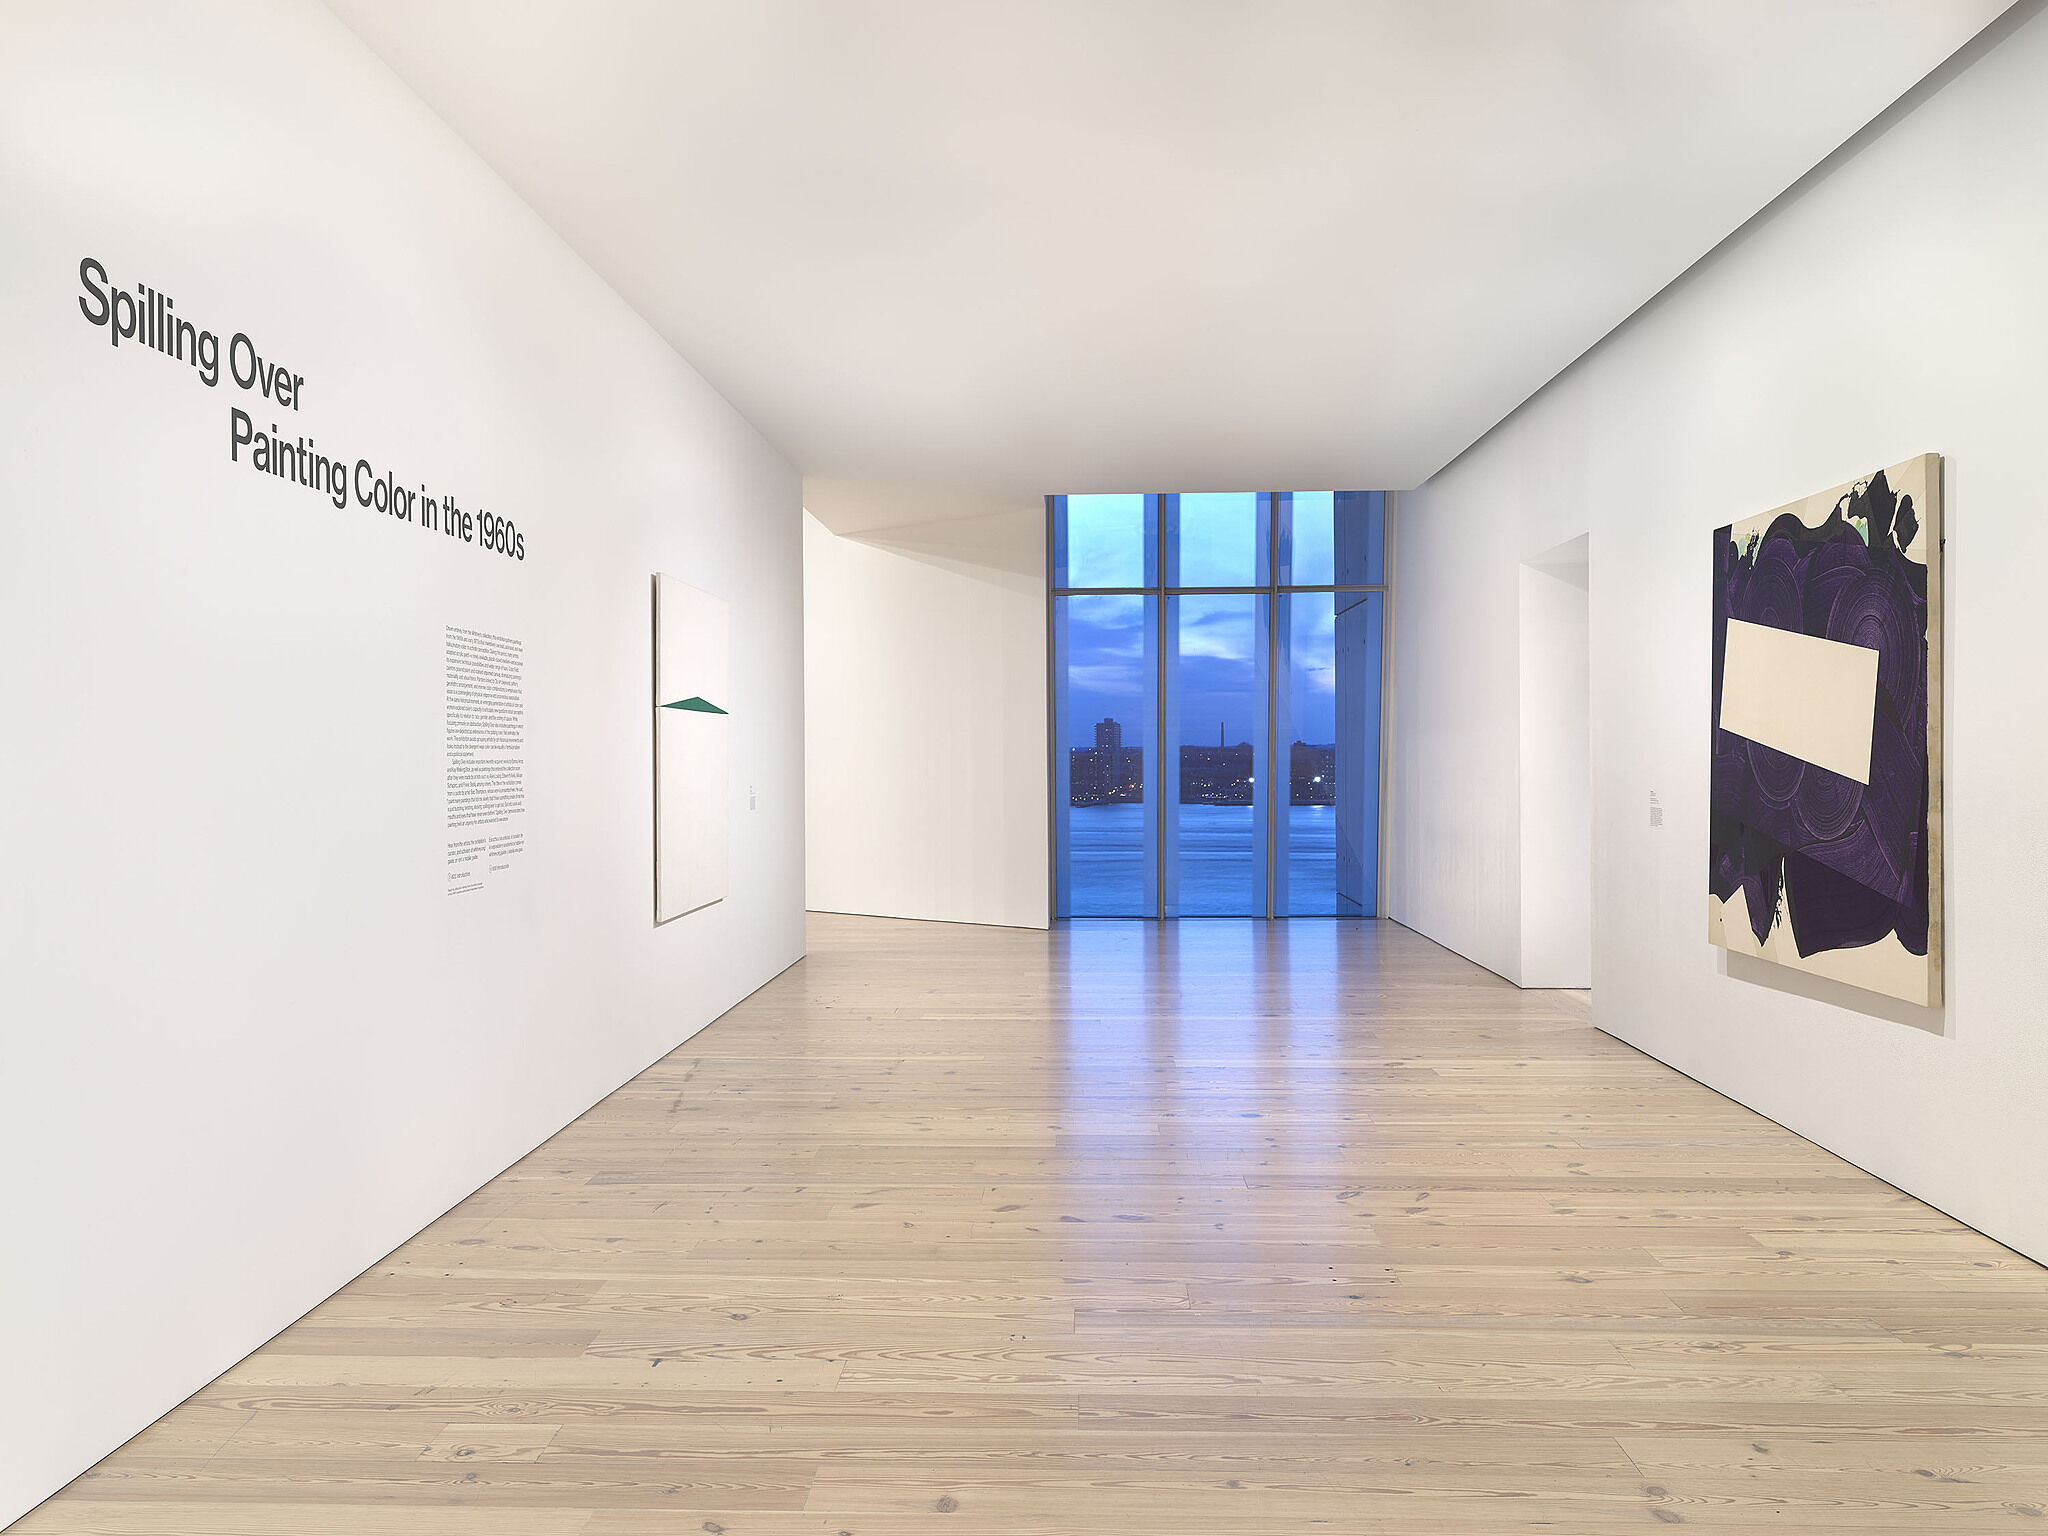 An image of the Whitney galleries